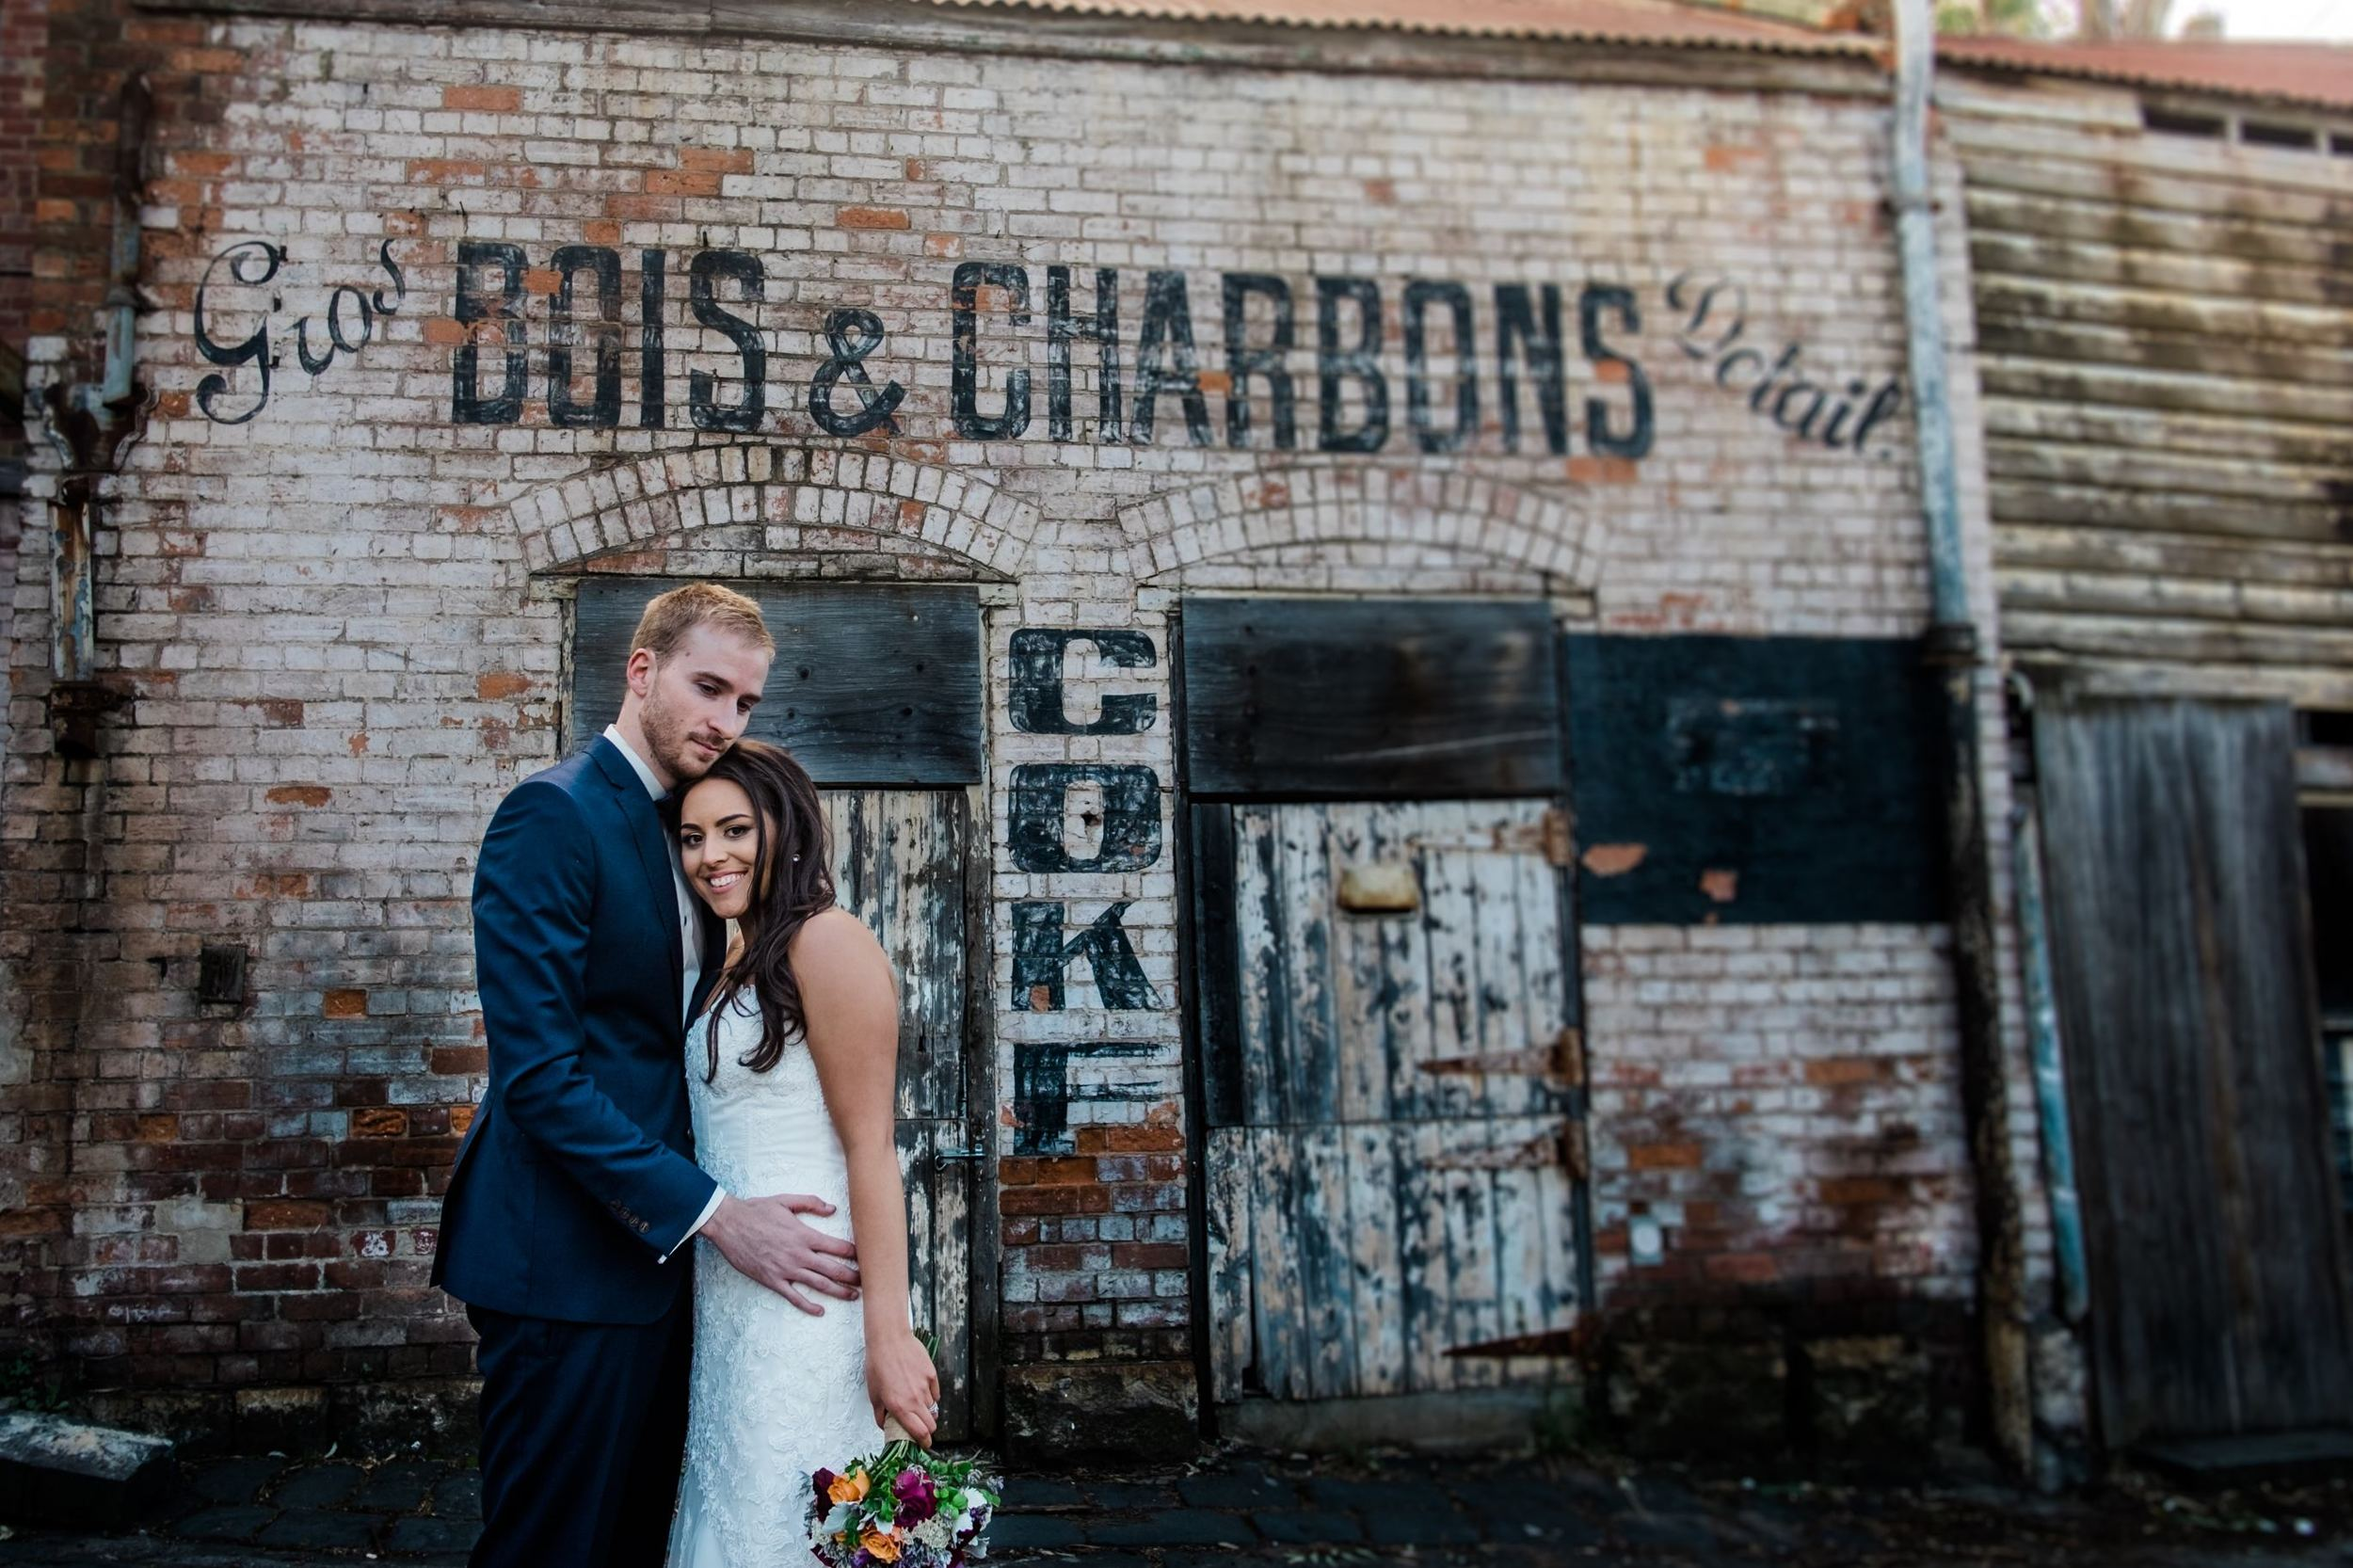 Abbotsford_Convent_Wedding-Portrait-of-bride-and-groom.jpeg